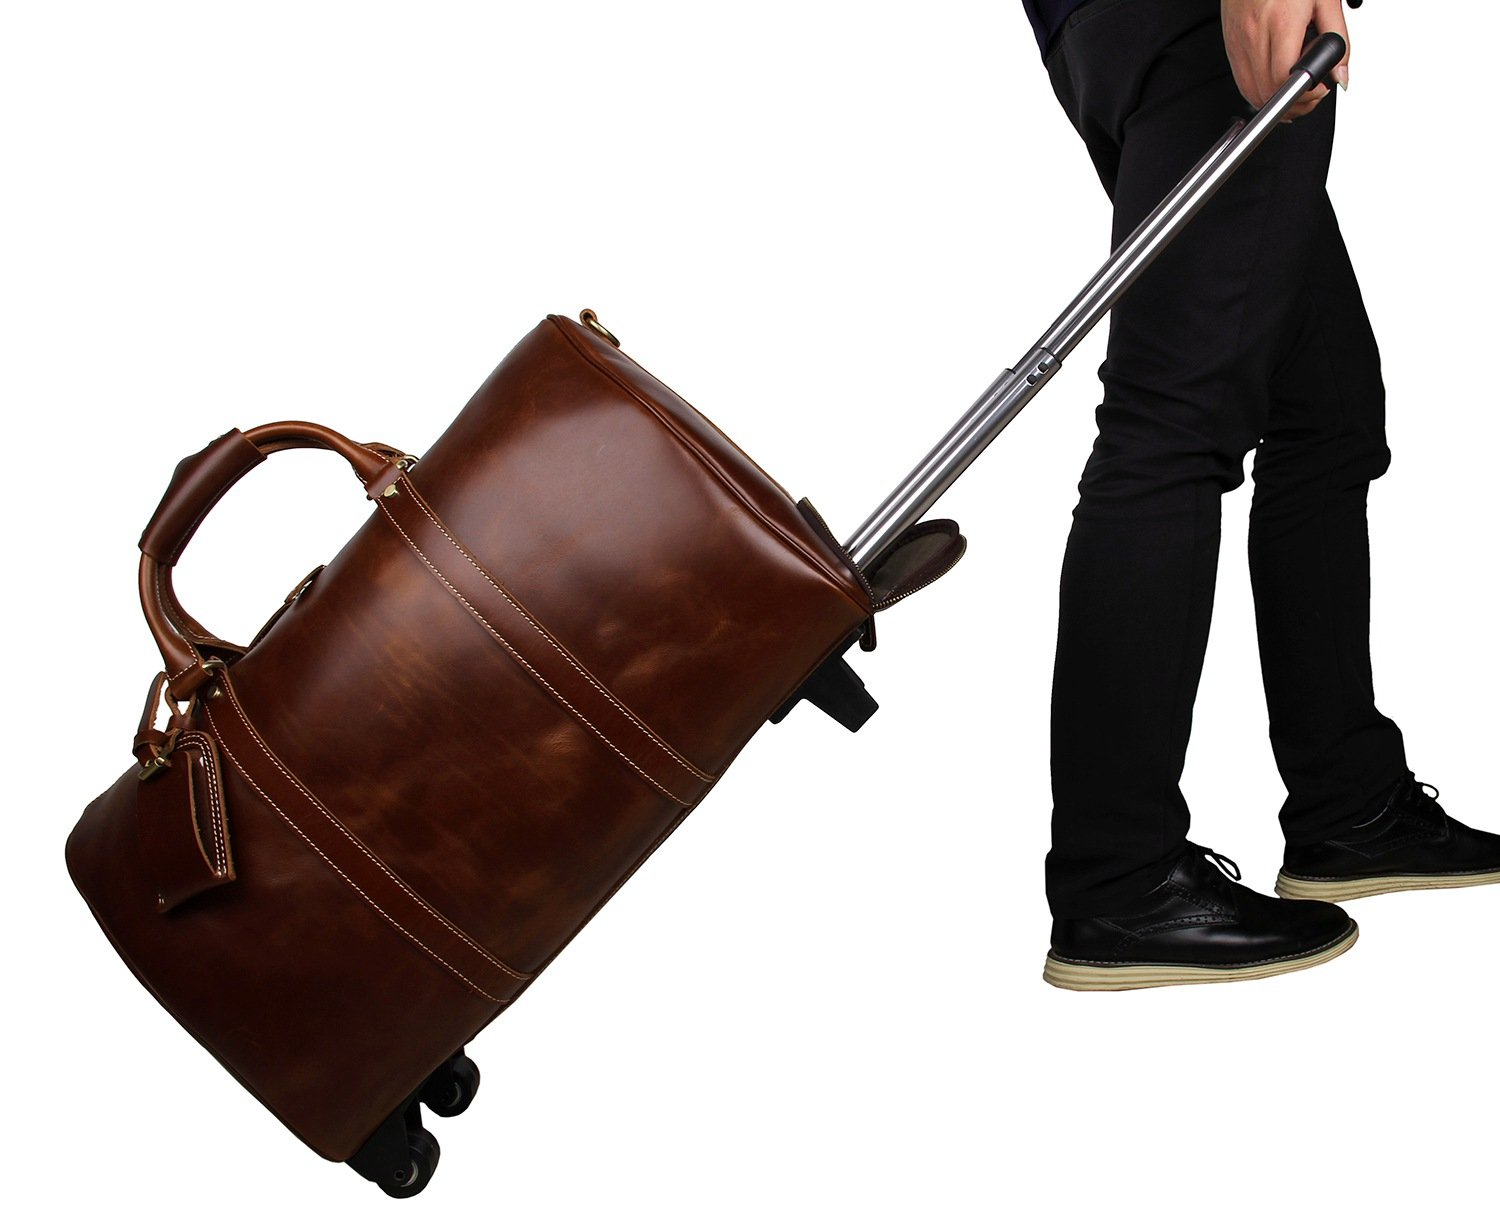 Mens Leather Travel Duffel Bag Brown Weekend Wheeled Carry ON Luggage Bags